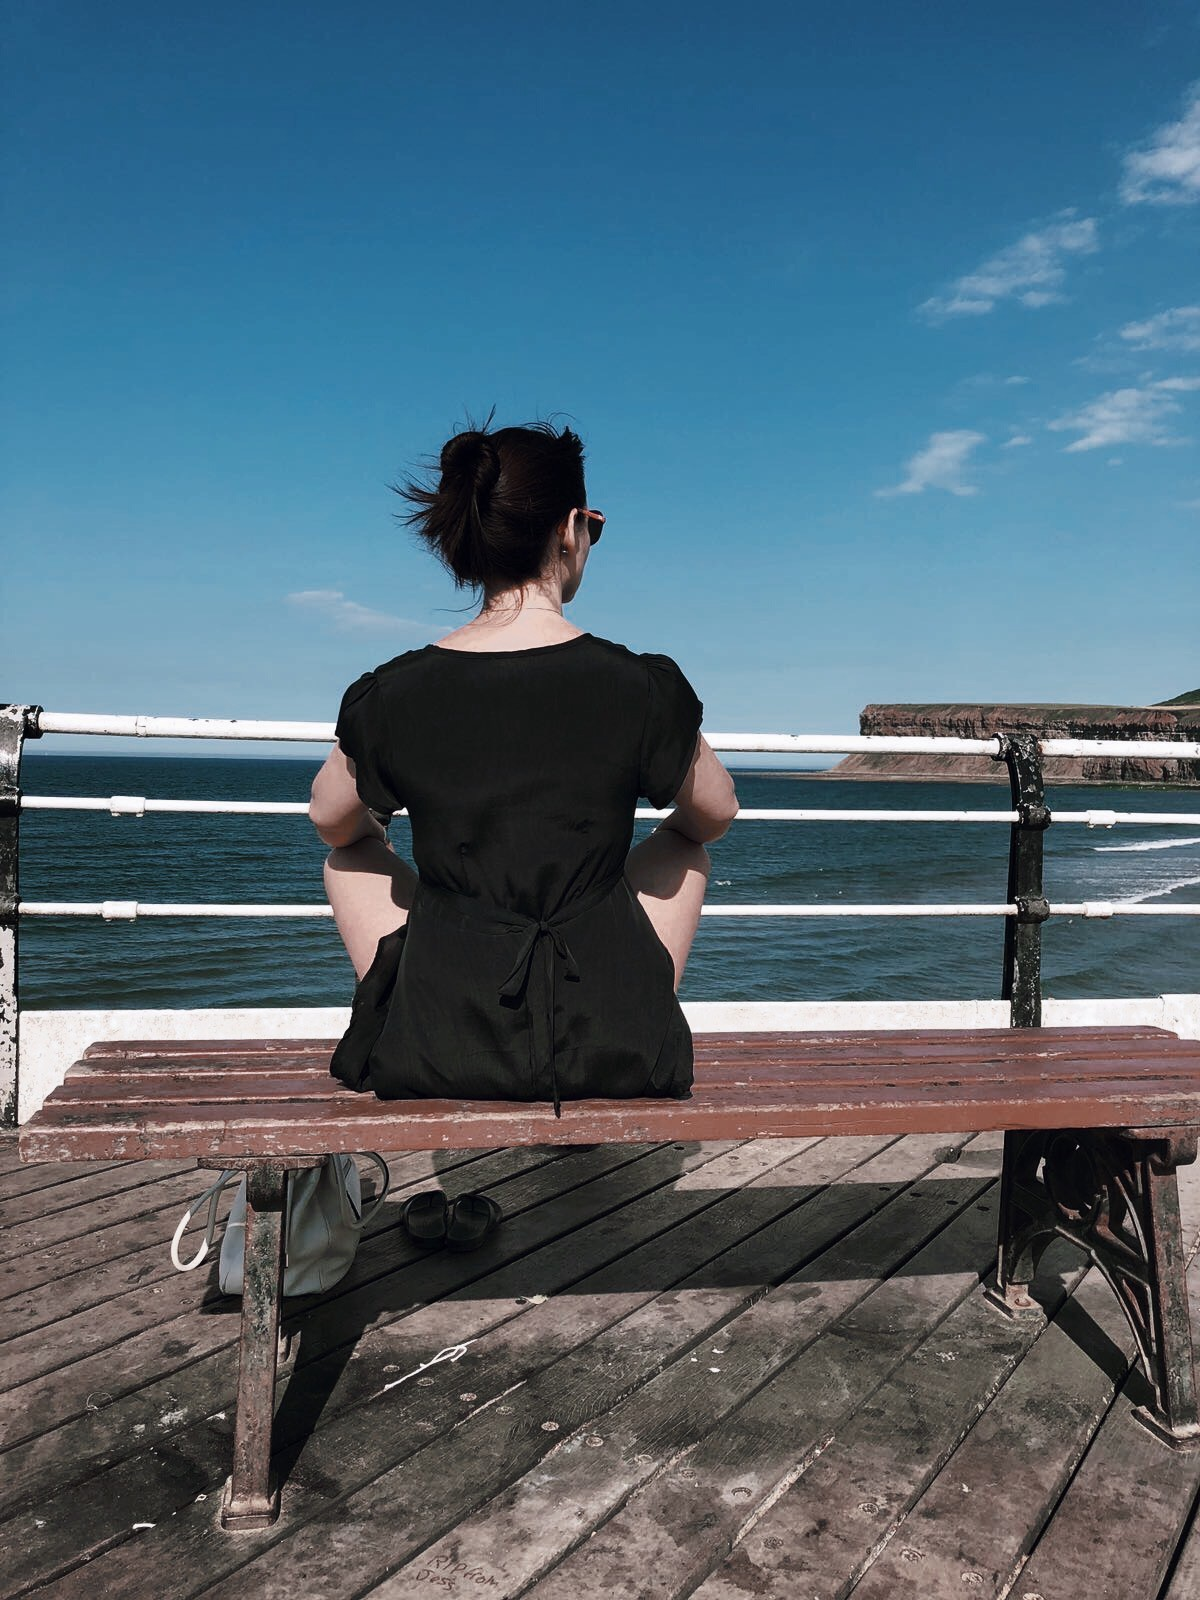 Back view of lady sitting crosslegged on a bench looking out to sea